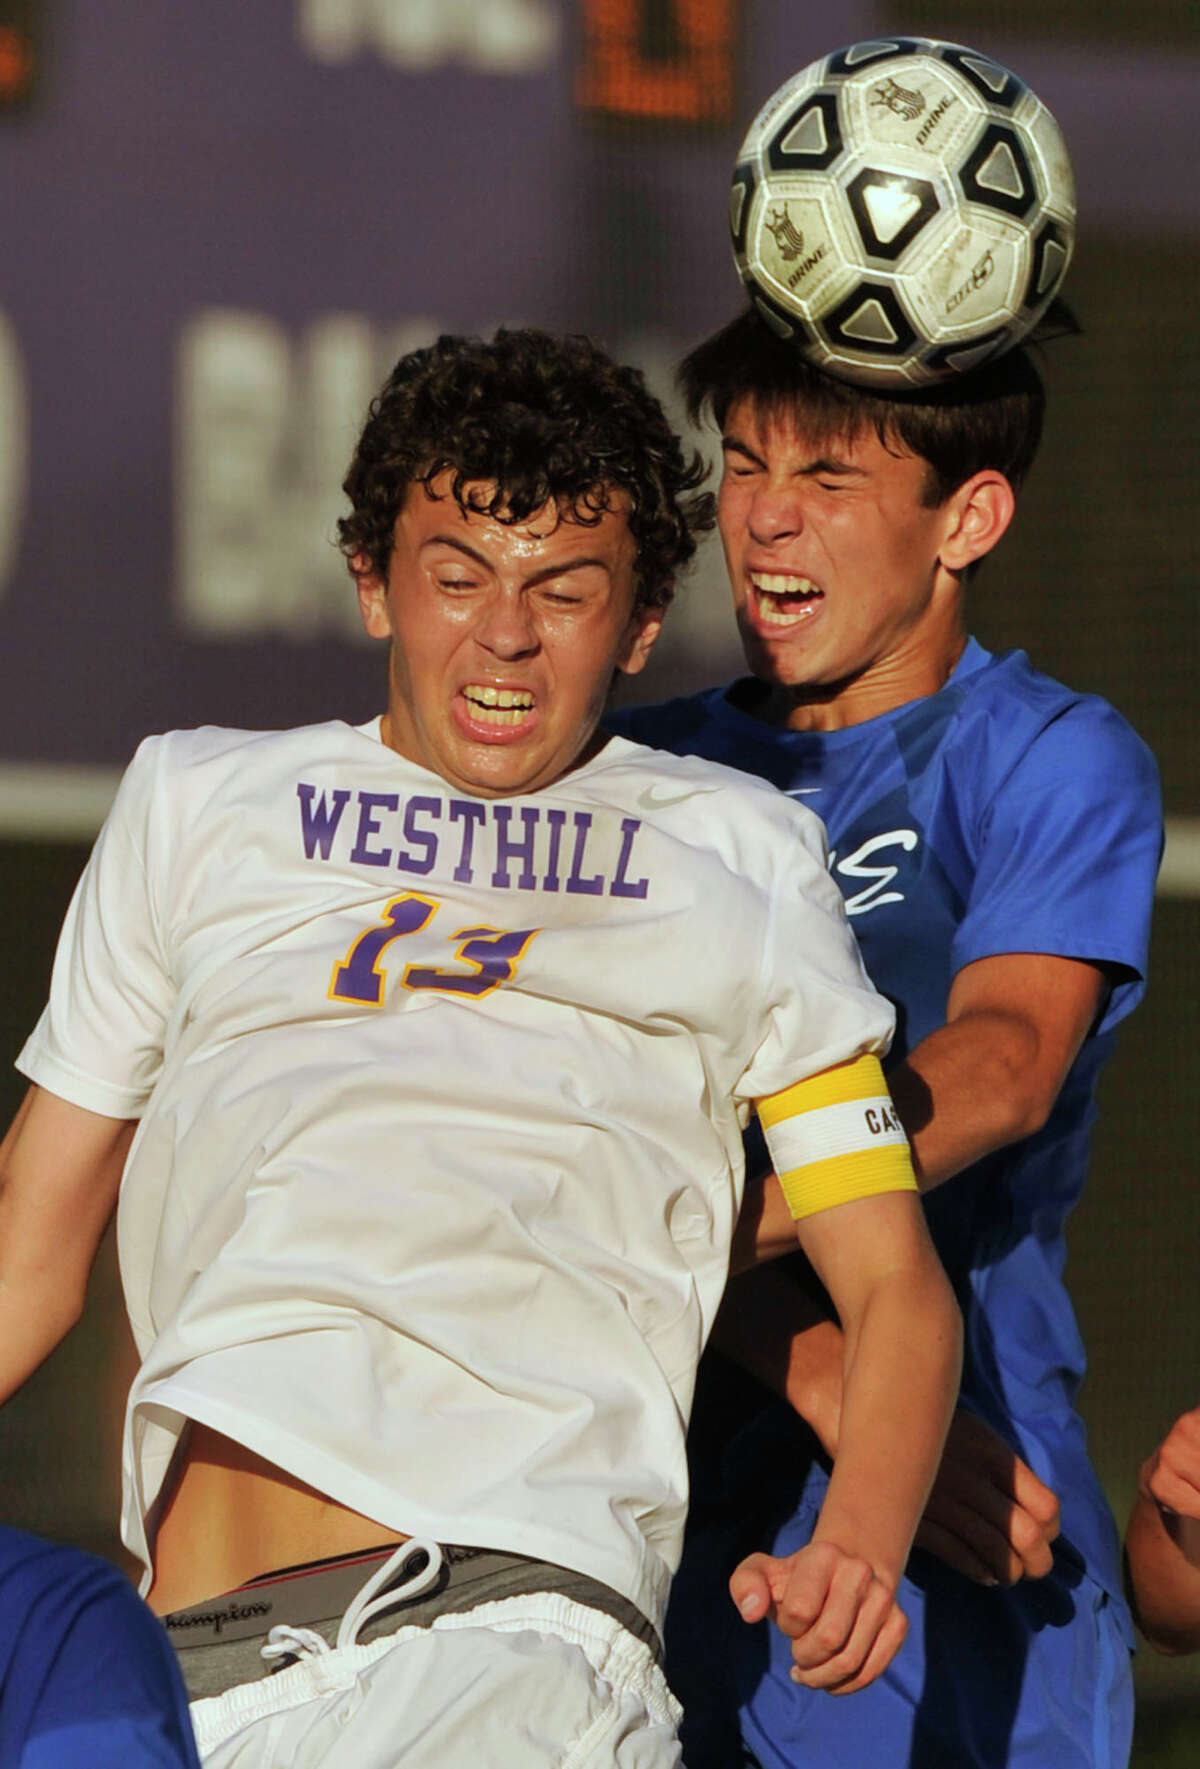 Westhill's Ian Zacharewicz and Darien's Andrew Mathew compete for a header during their game at Westhill High School in Stamford, Conn., on Wednesday, Sept. 18, 2013. Westhill beat Darien, 4-1.